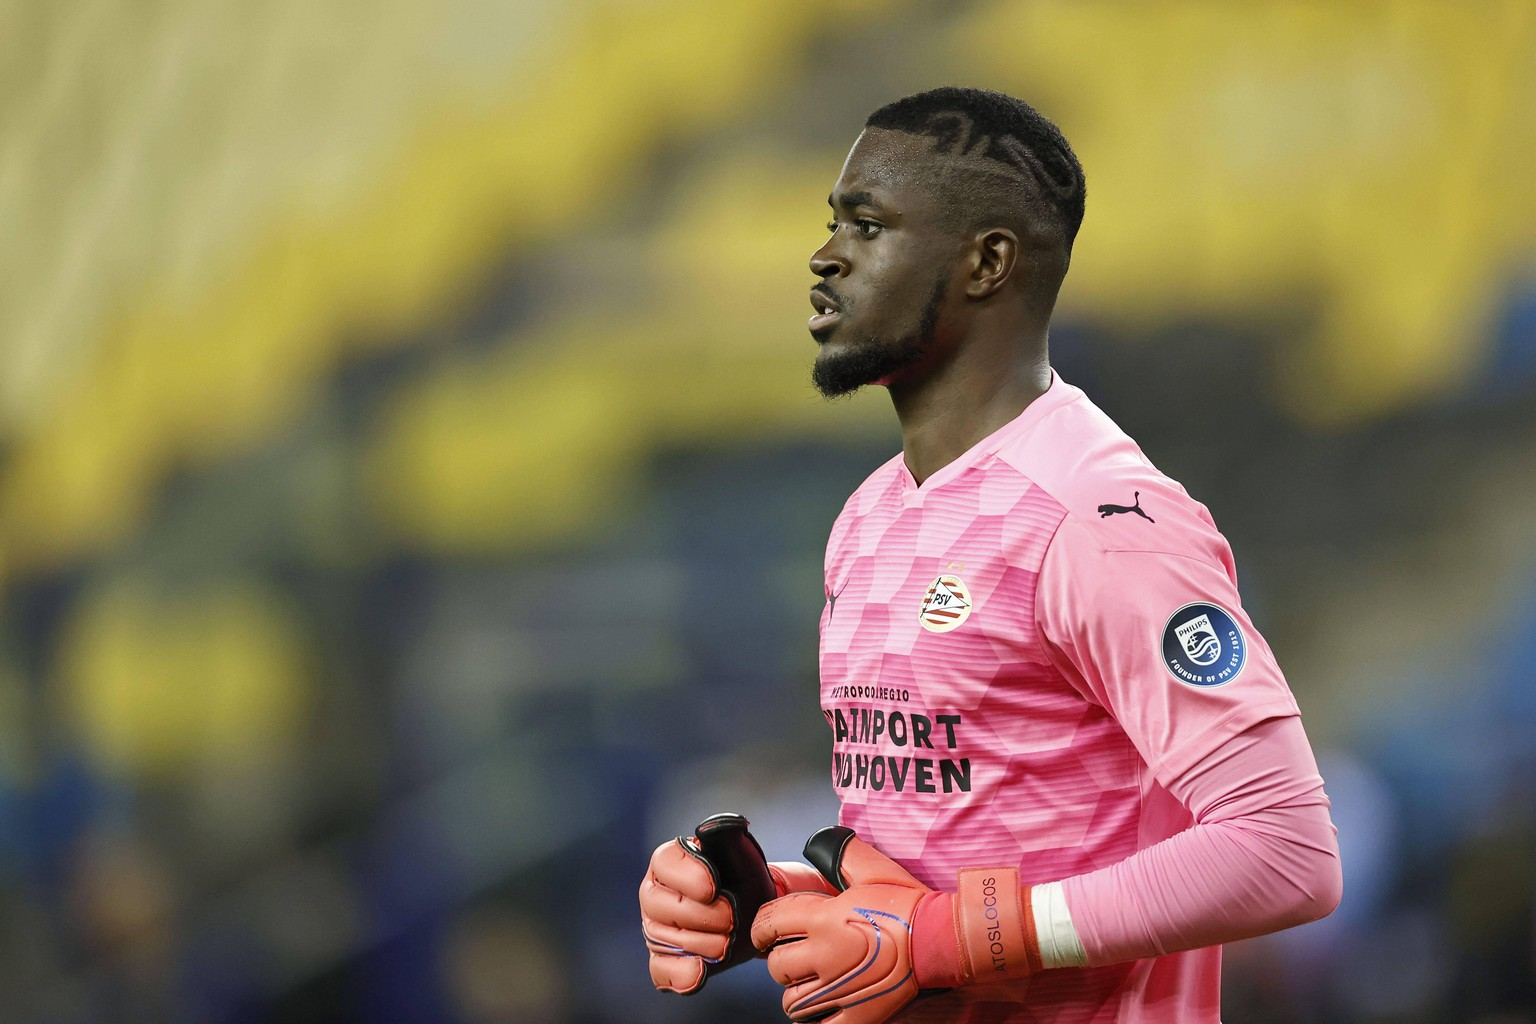 ARNHEM - PSV Eindhoven goalkeeper Yvon Mvogo during the Dutch Eredivisie match between Vitesse Arnhem and PSV at the Gelredome on October 25, 2020 in Arnhem, The Netherlands. ANP MAURICE VAN STEEN Dutch Eredivisie 2020/2021 xVIxANPxSportx/xxANPxIVx *** ARNHEM PSV Eindhoven goalkeeper Yvon Mvogo during the Dutch Eredivisie match between Vitesse Arnhem and PSV at the Gelredome on October 25, 2020 in Arnhem, The Netherlands ANP MAURICE VAN STEEN Dutch Eredivisie 2020 2021 xVIxANPxSportx xxANPxIVx 424401406